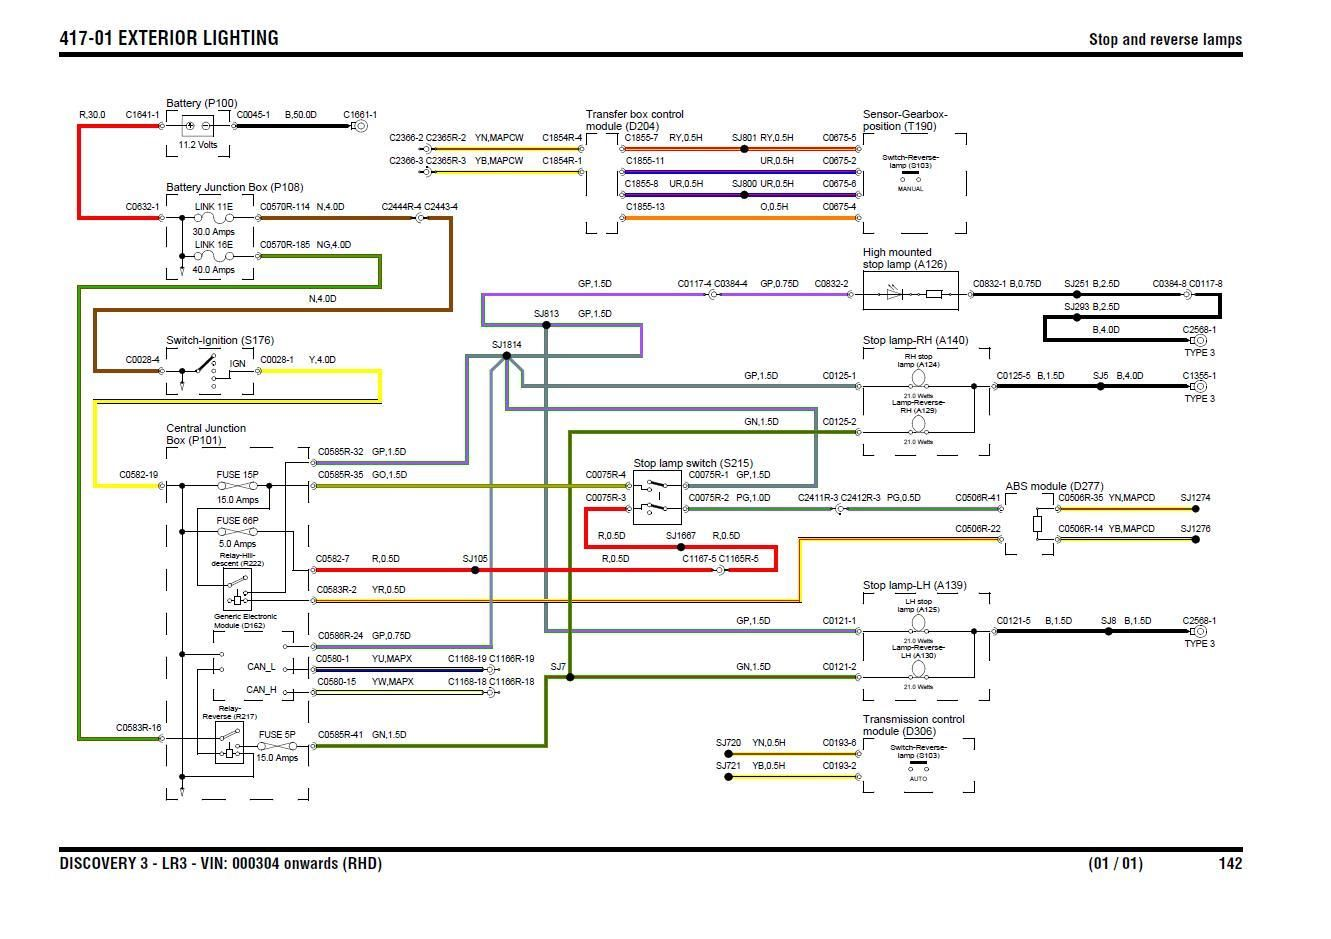 discovery 3 wiring diagram   26 wiring diagram images